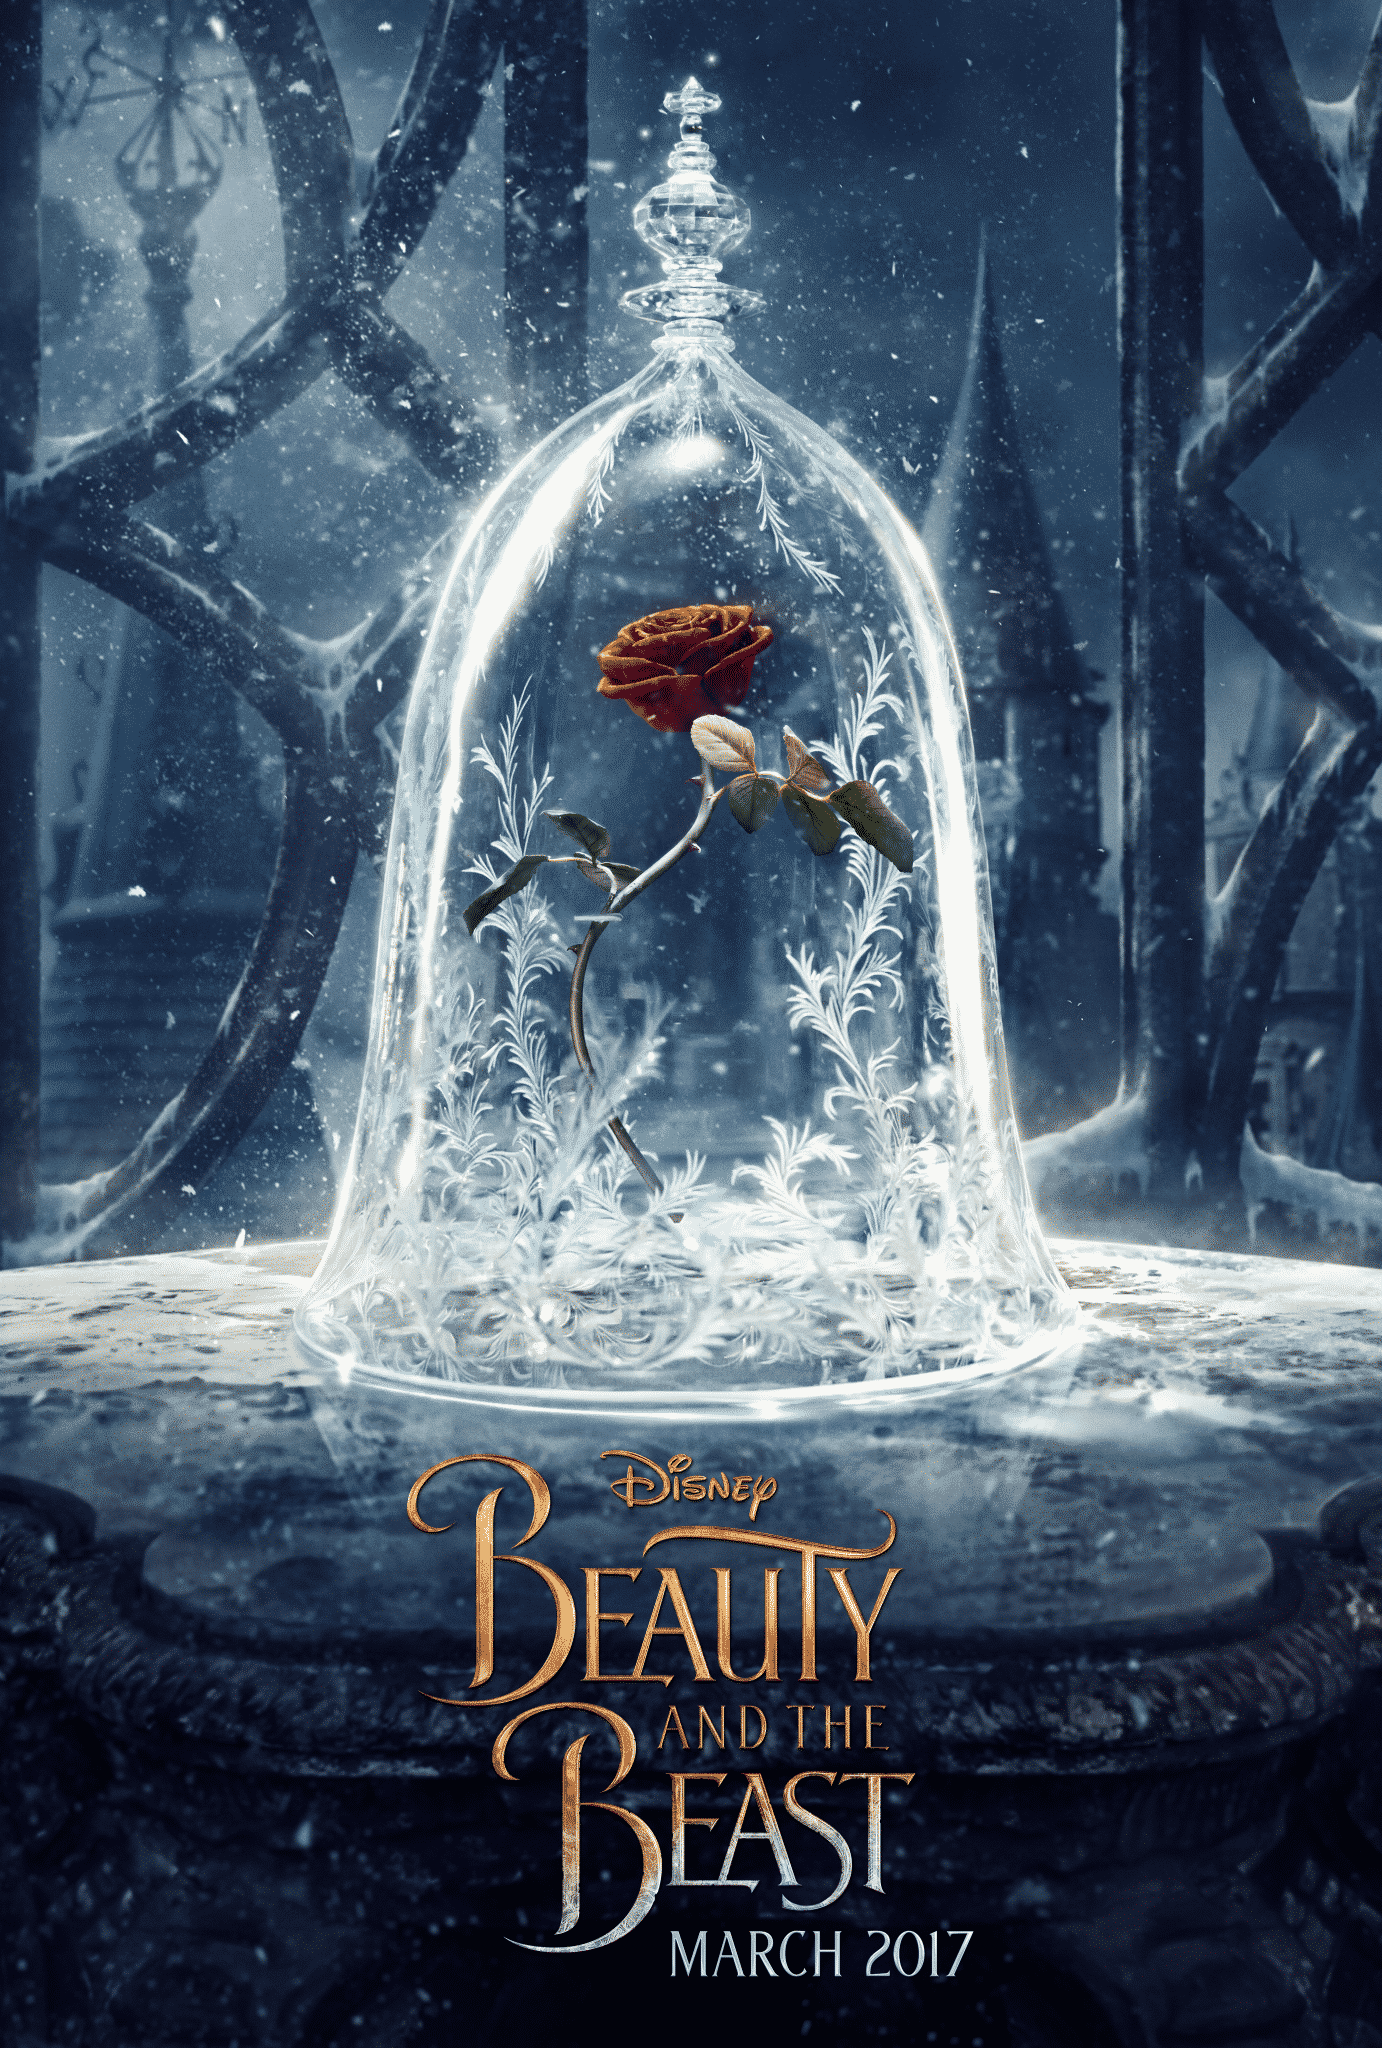 NEW Teaser Poster for Disney's The Beauty And The Beast in Theaters March 17, 2017 #BeOurGuest #BeautyAndTheBeast | ThisNThatwithOlivia.com